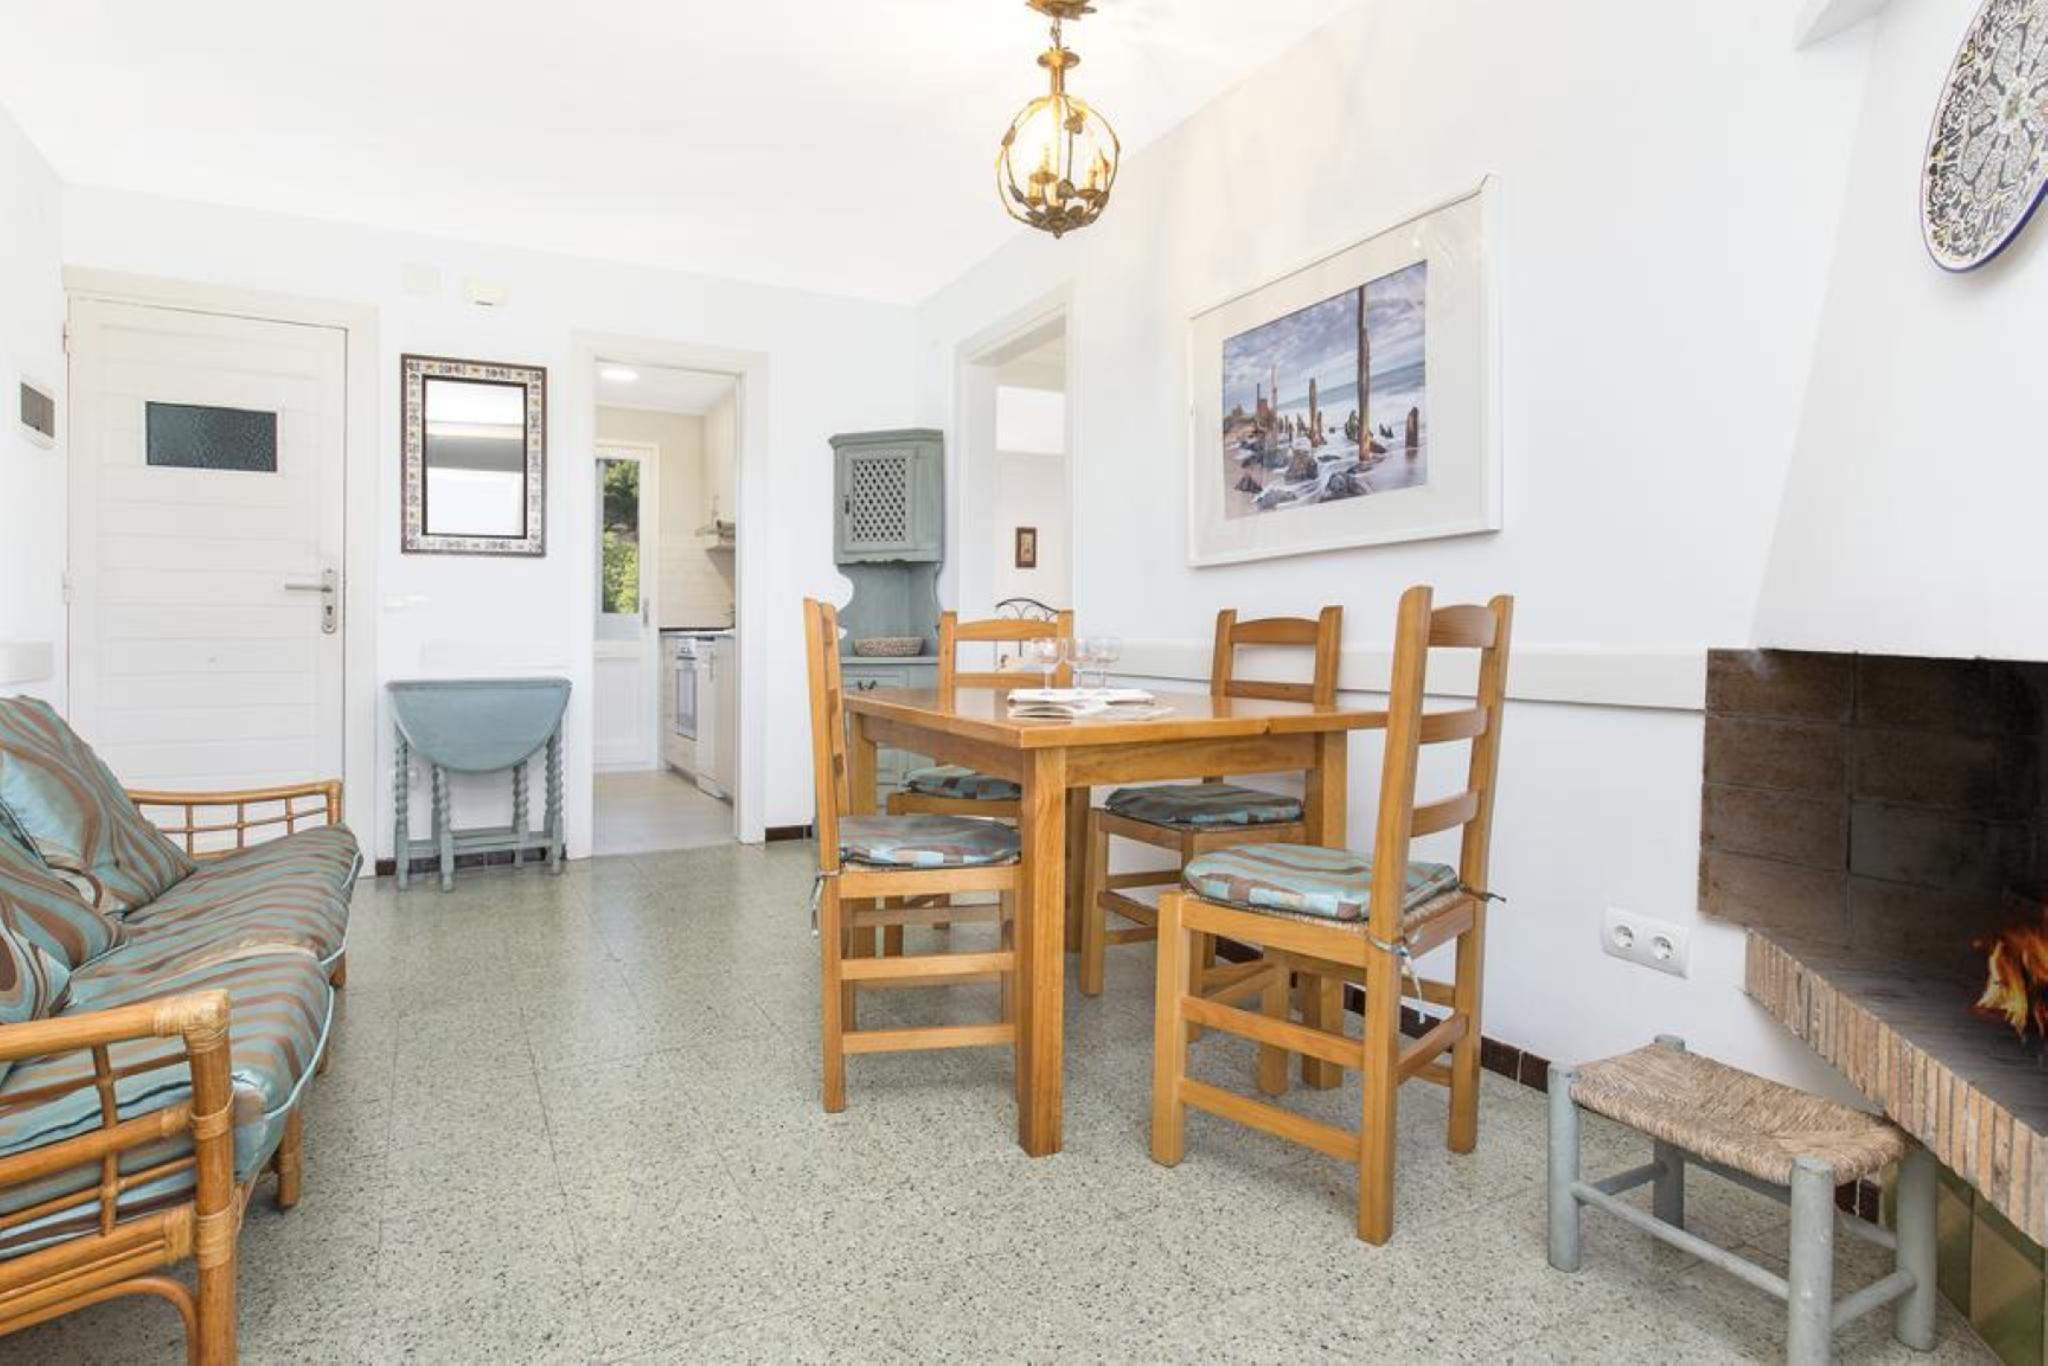 104770   Apartment In Palafrugell